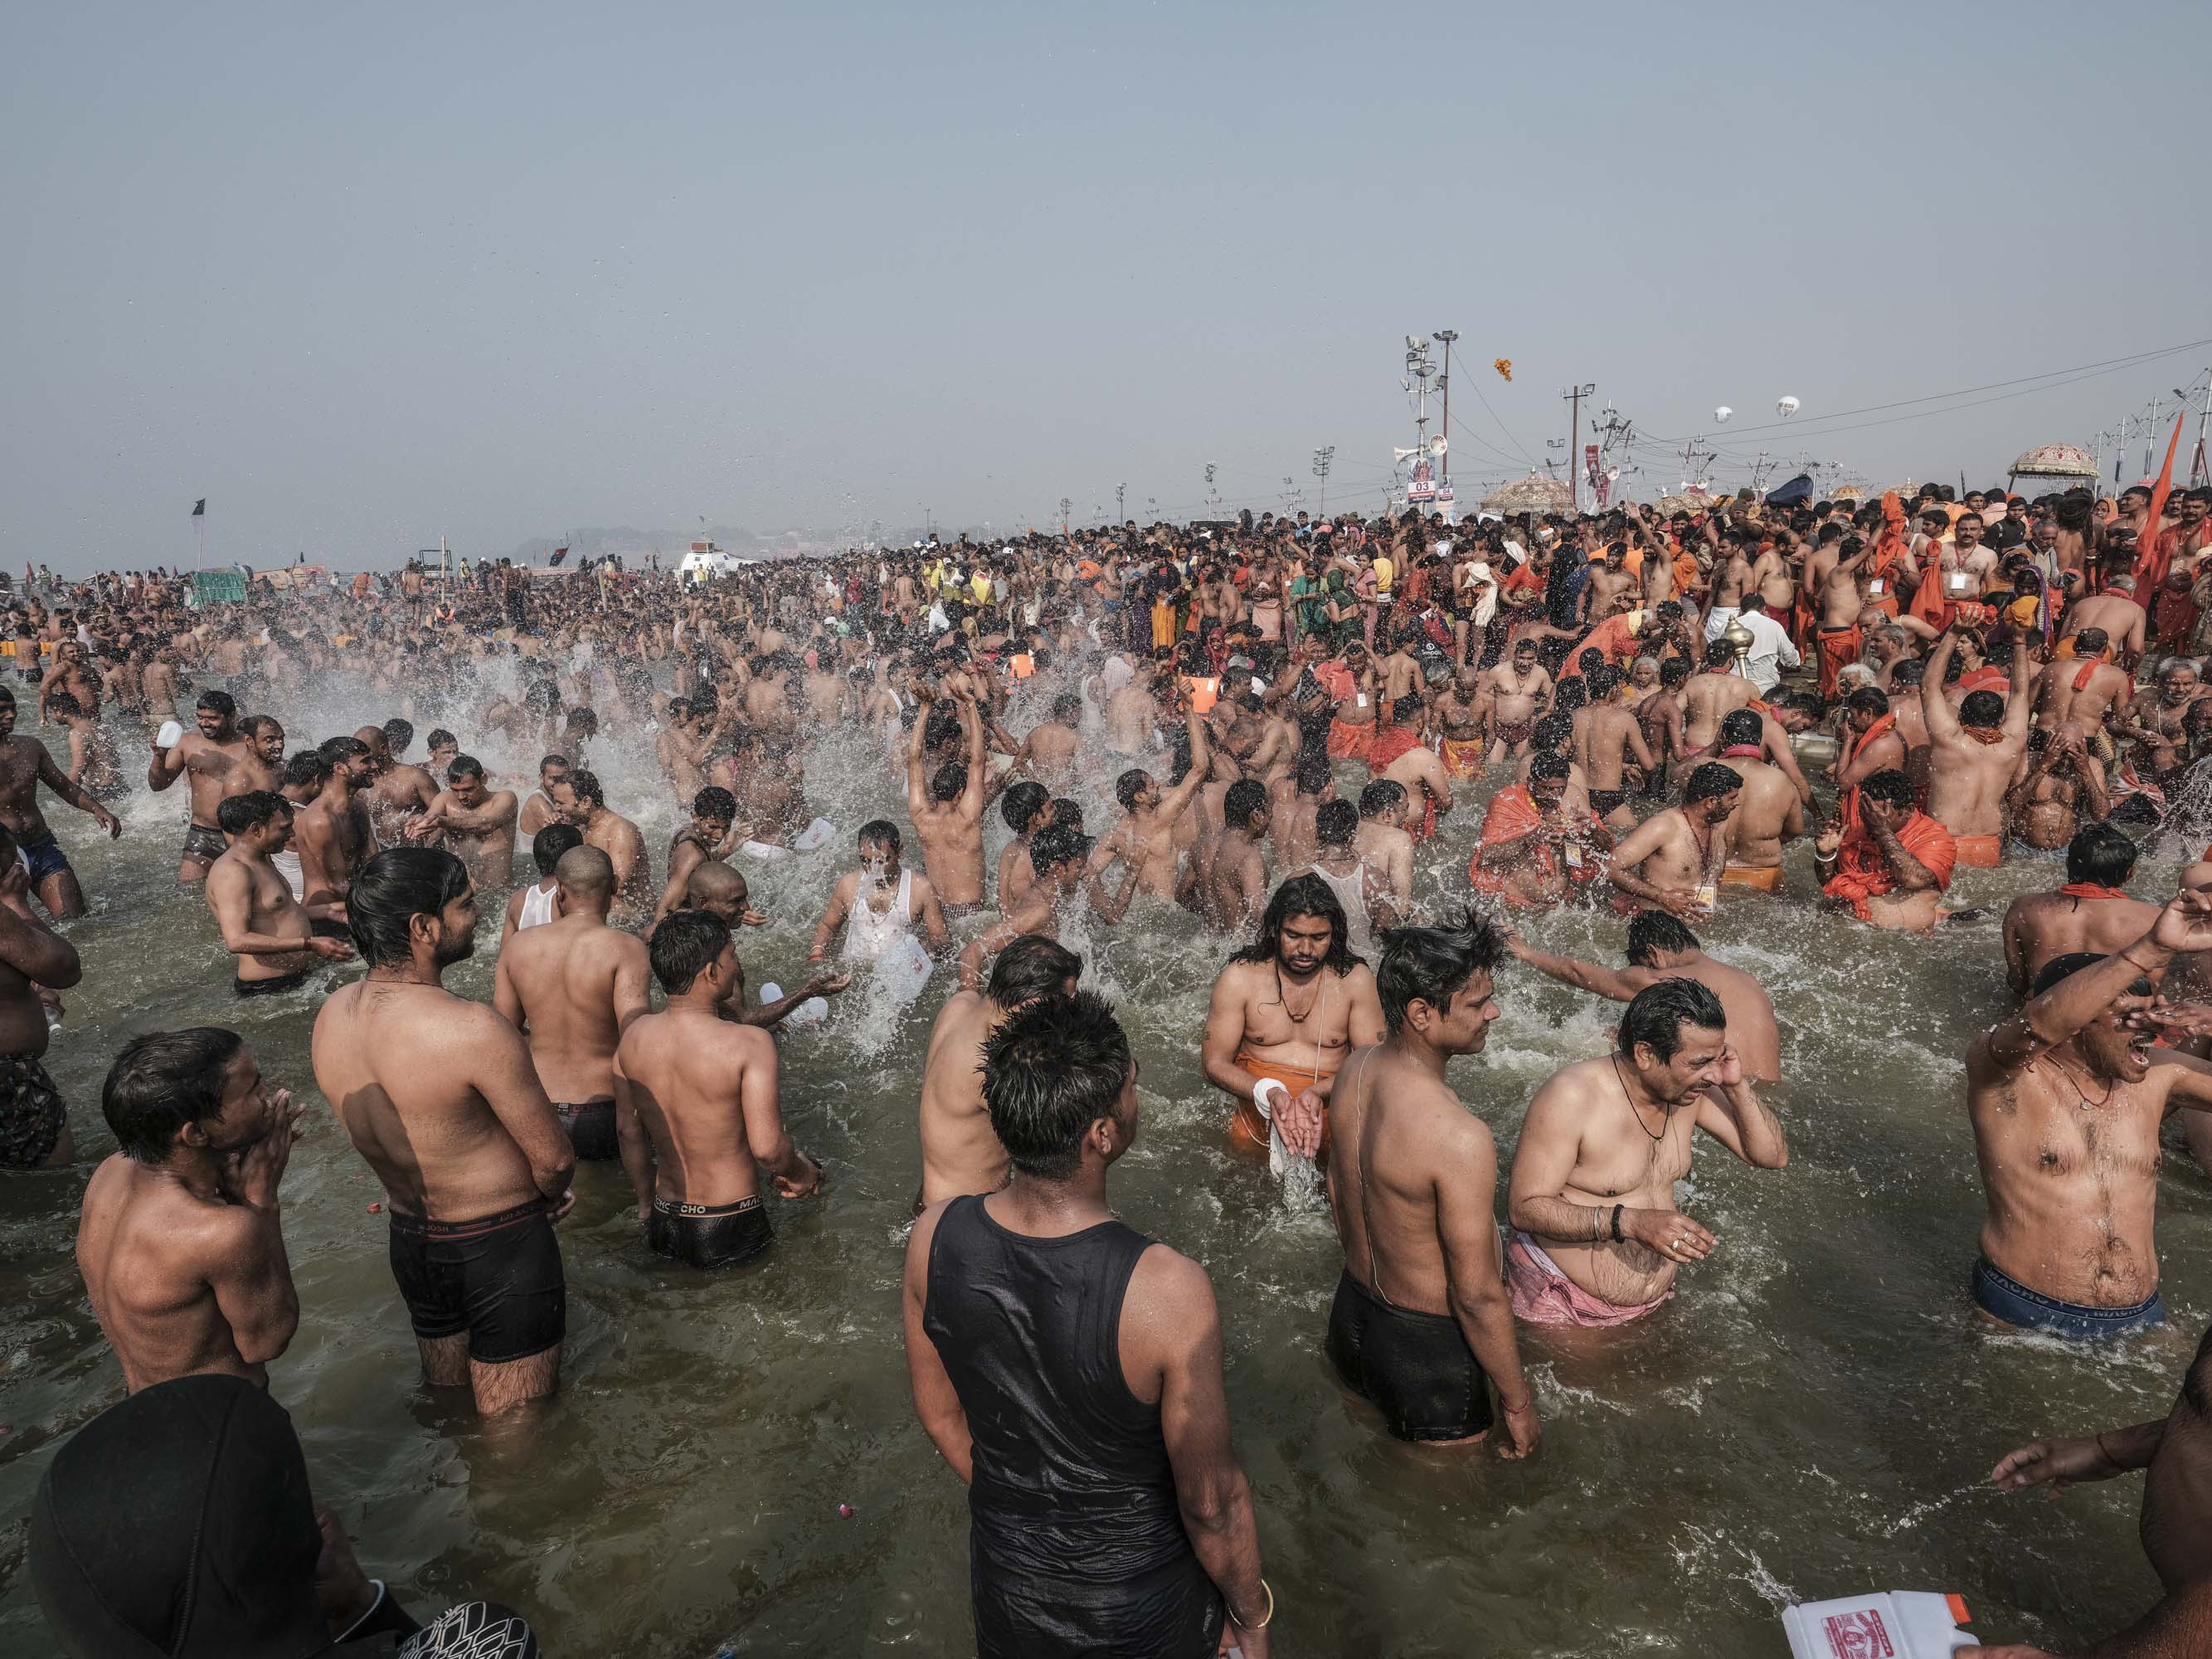 water splash bath crowd 4 February pilgrims Kumbh mela 2019 India Allahabad Prayagraj Ardh hindu religious Festival event rivers photographer jose jeuland photography